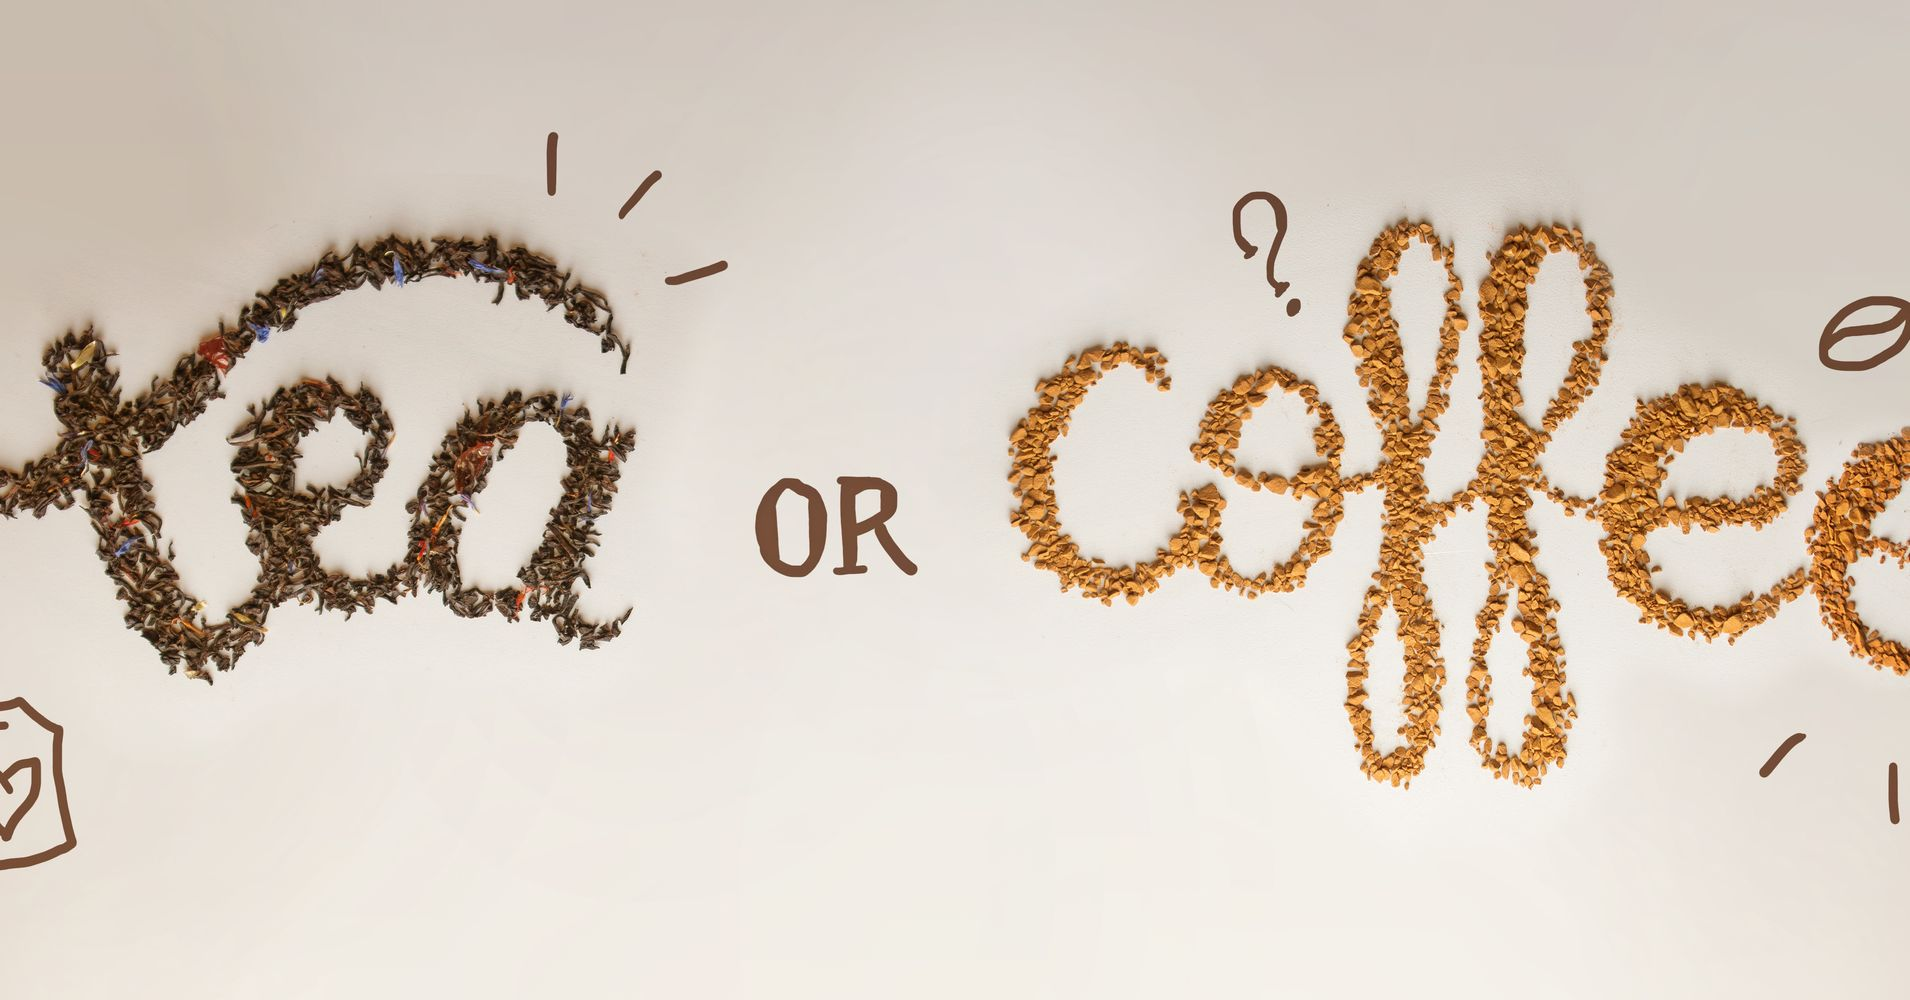 Antioxidant Expert Answers Your Questions On Instant Coffee And Tea